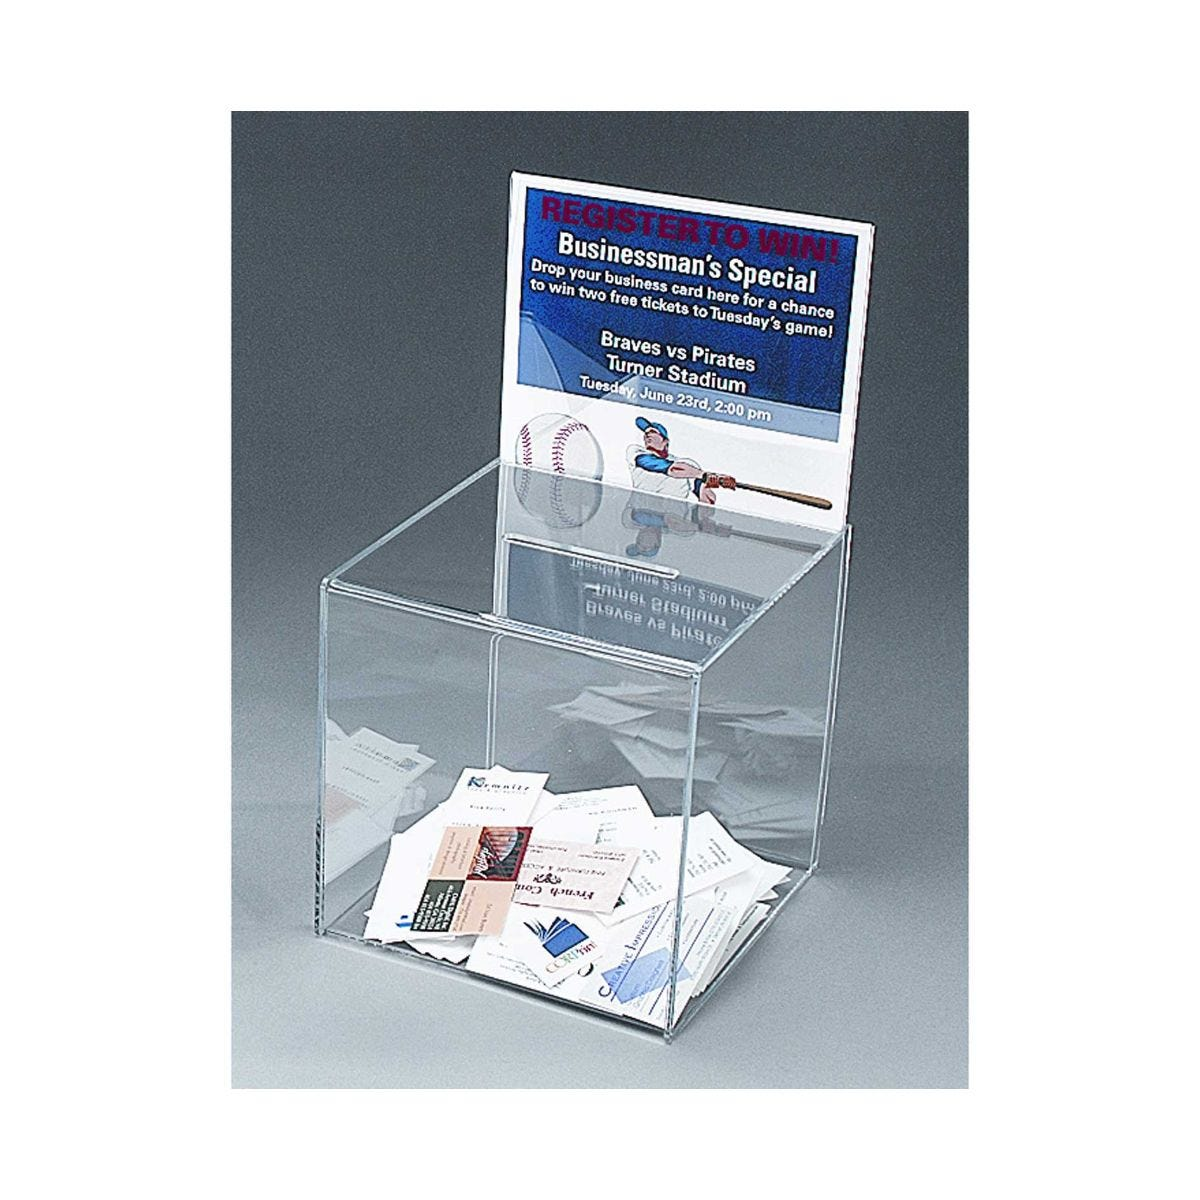 drop your business card to win template 28 images deflecto large